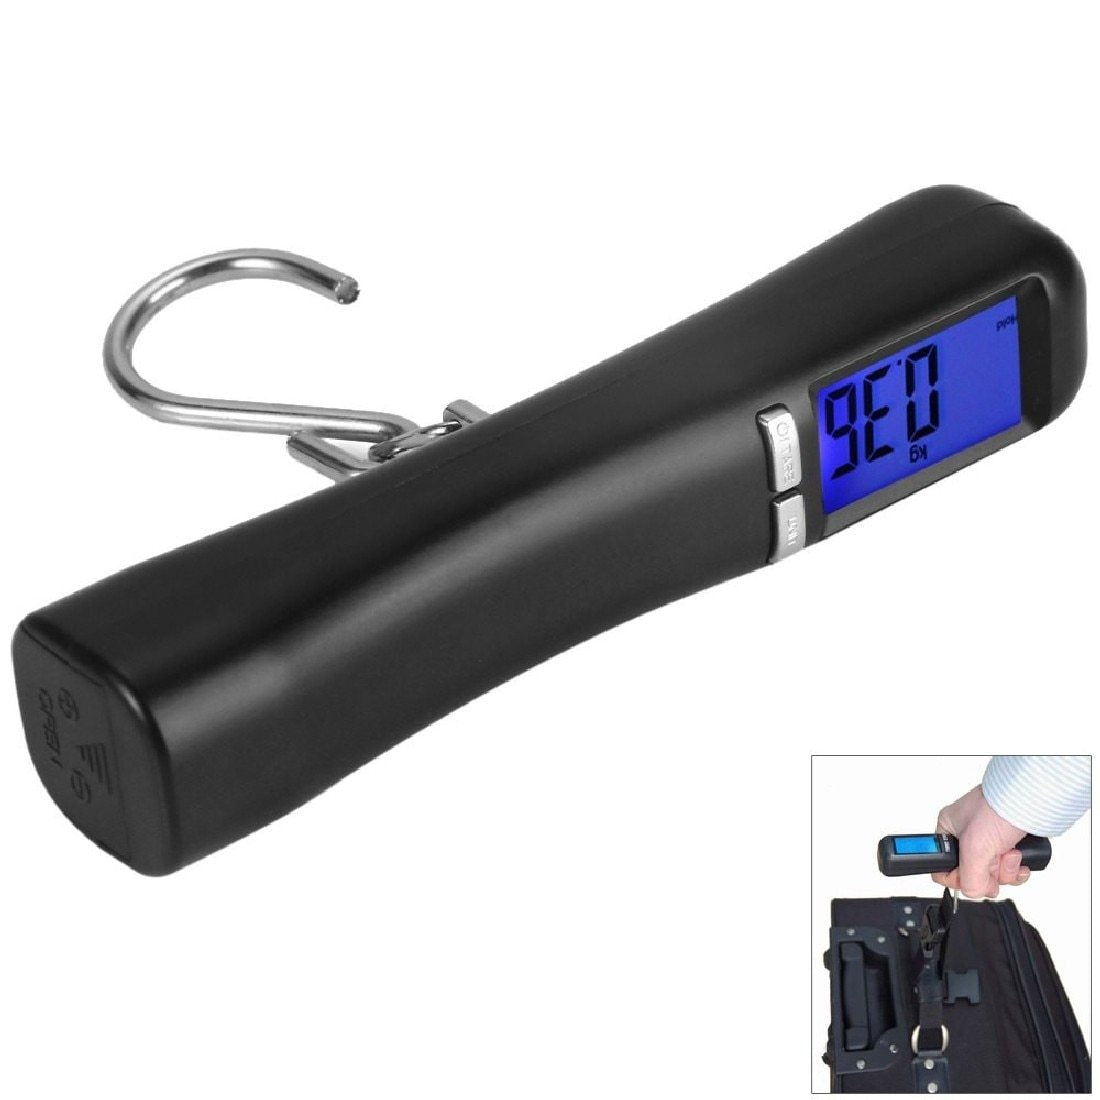 Lofthigher, , LCD 40Kg Travel Luggage Scale